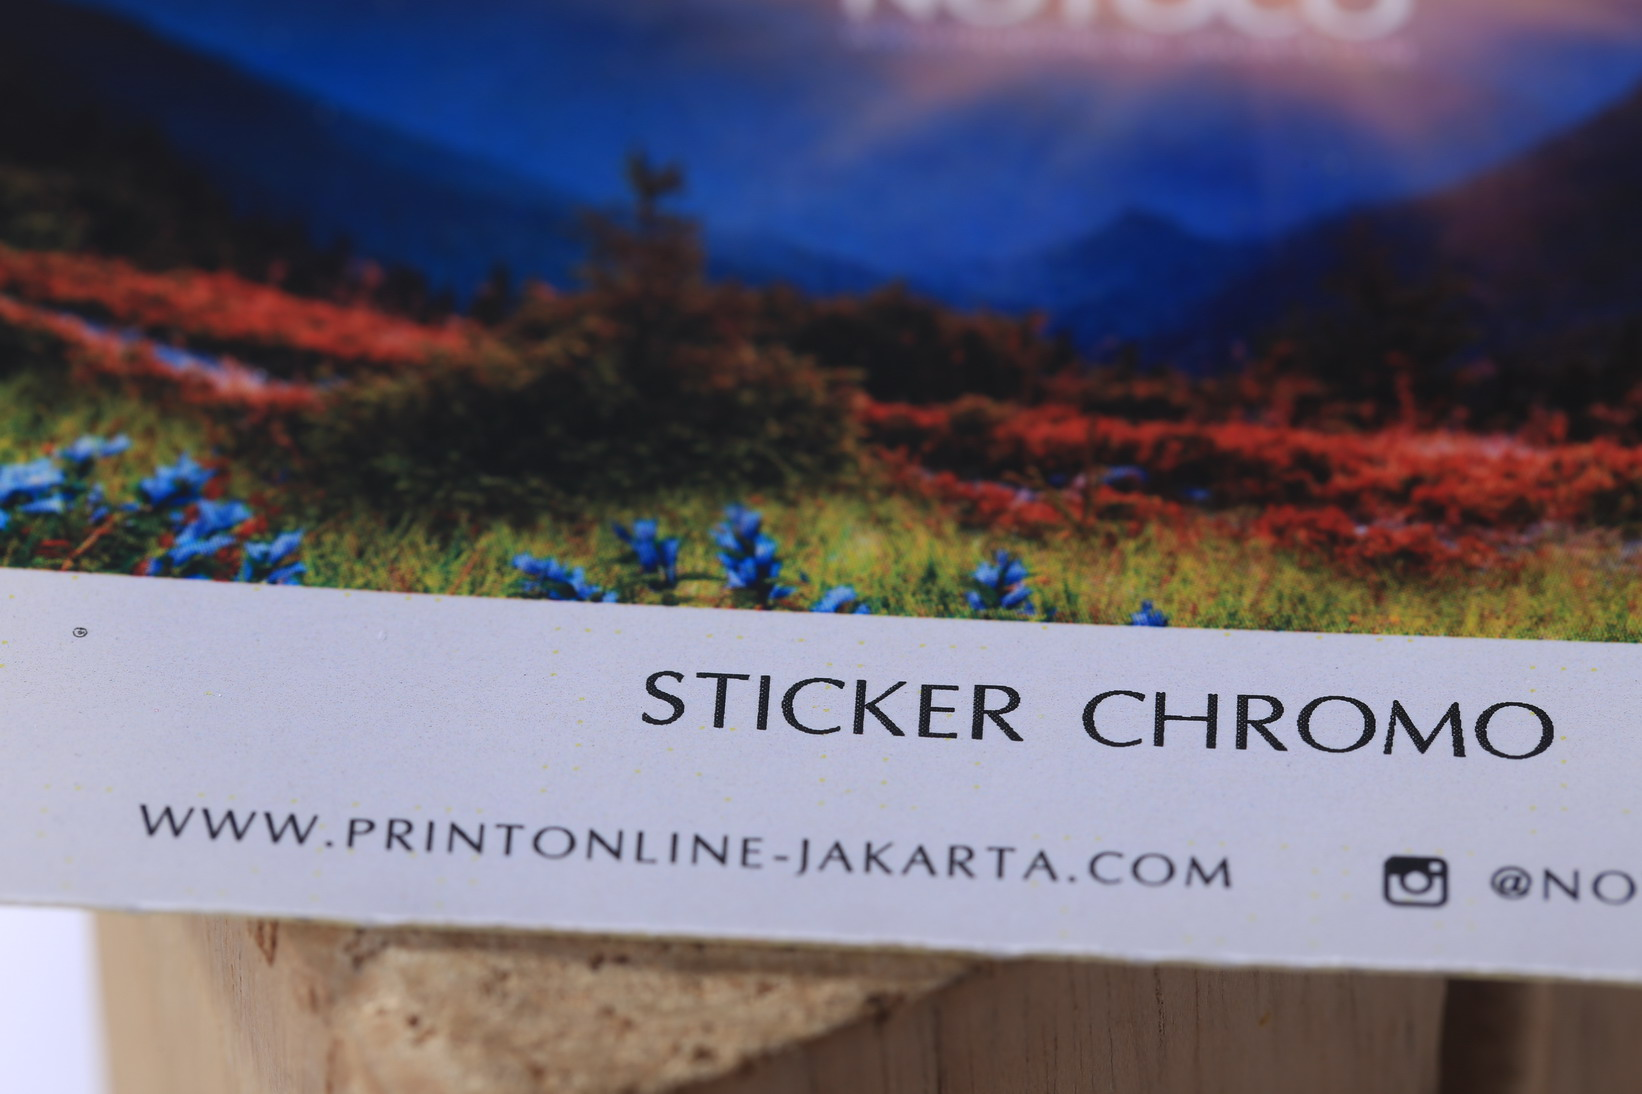 Sticker Chromo